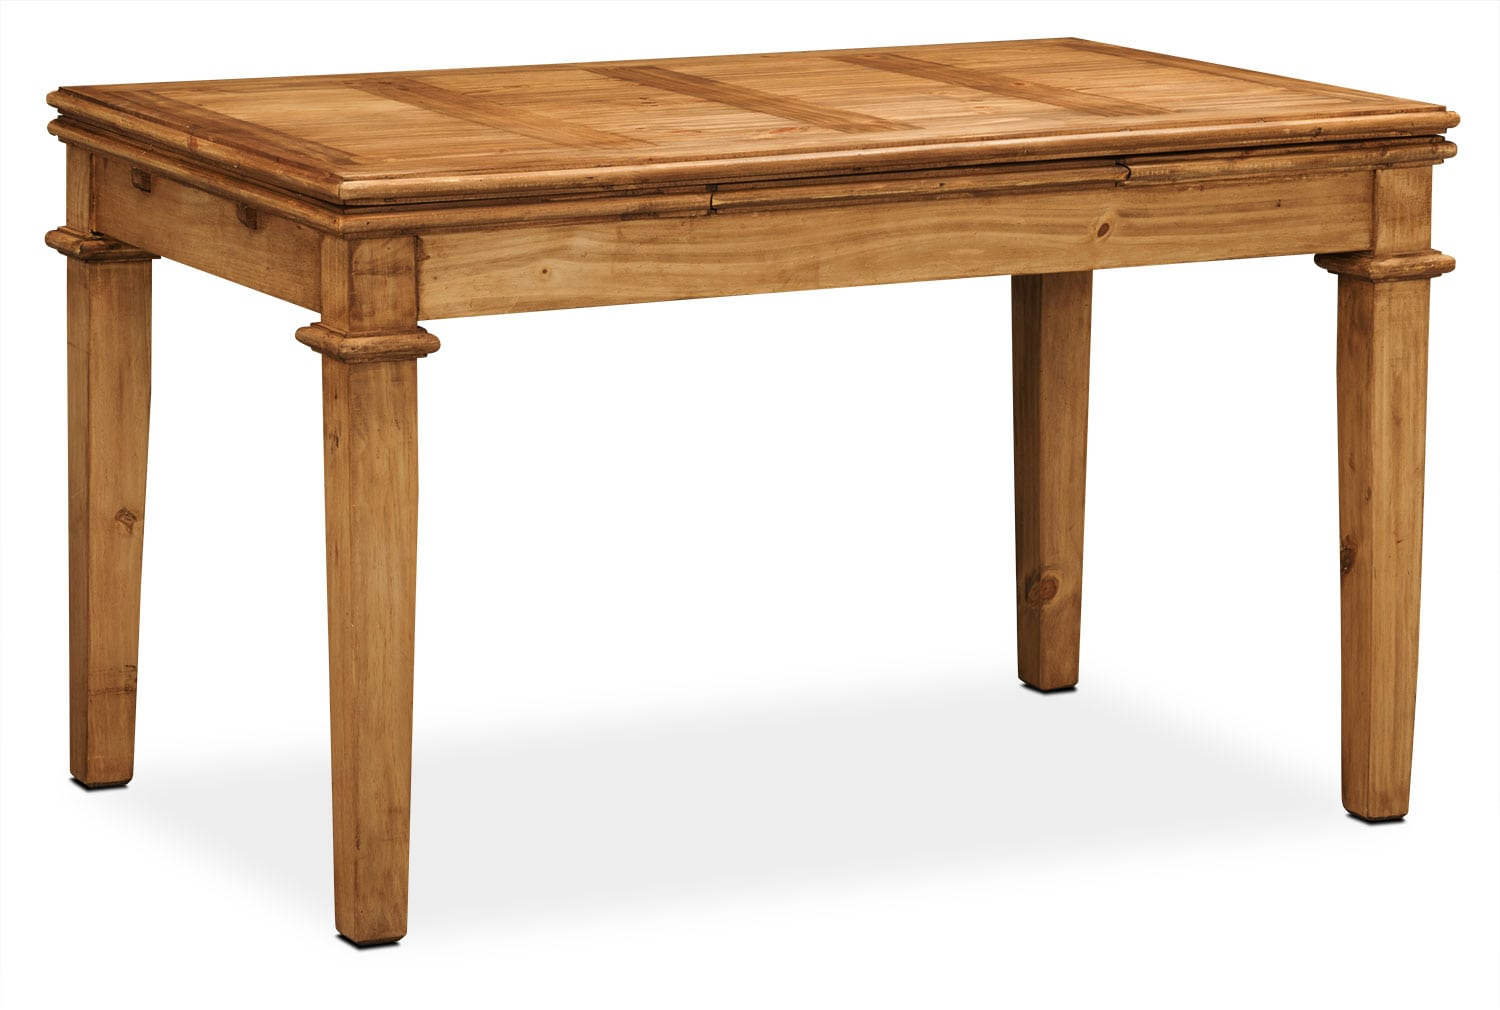 Santa Fe Rusticos Solid Pine Dining Table United Furniture Warehouse